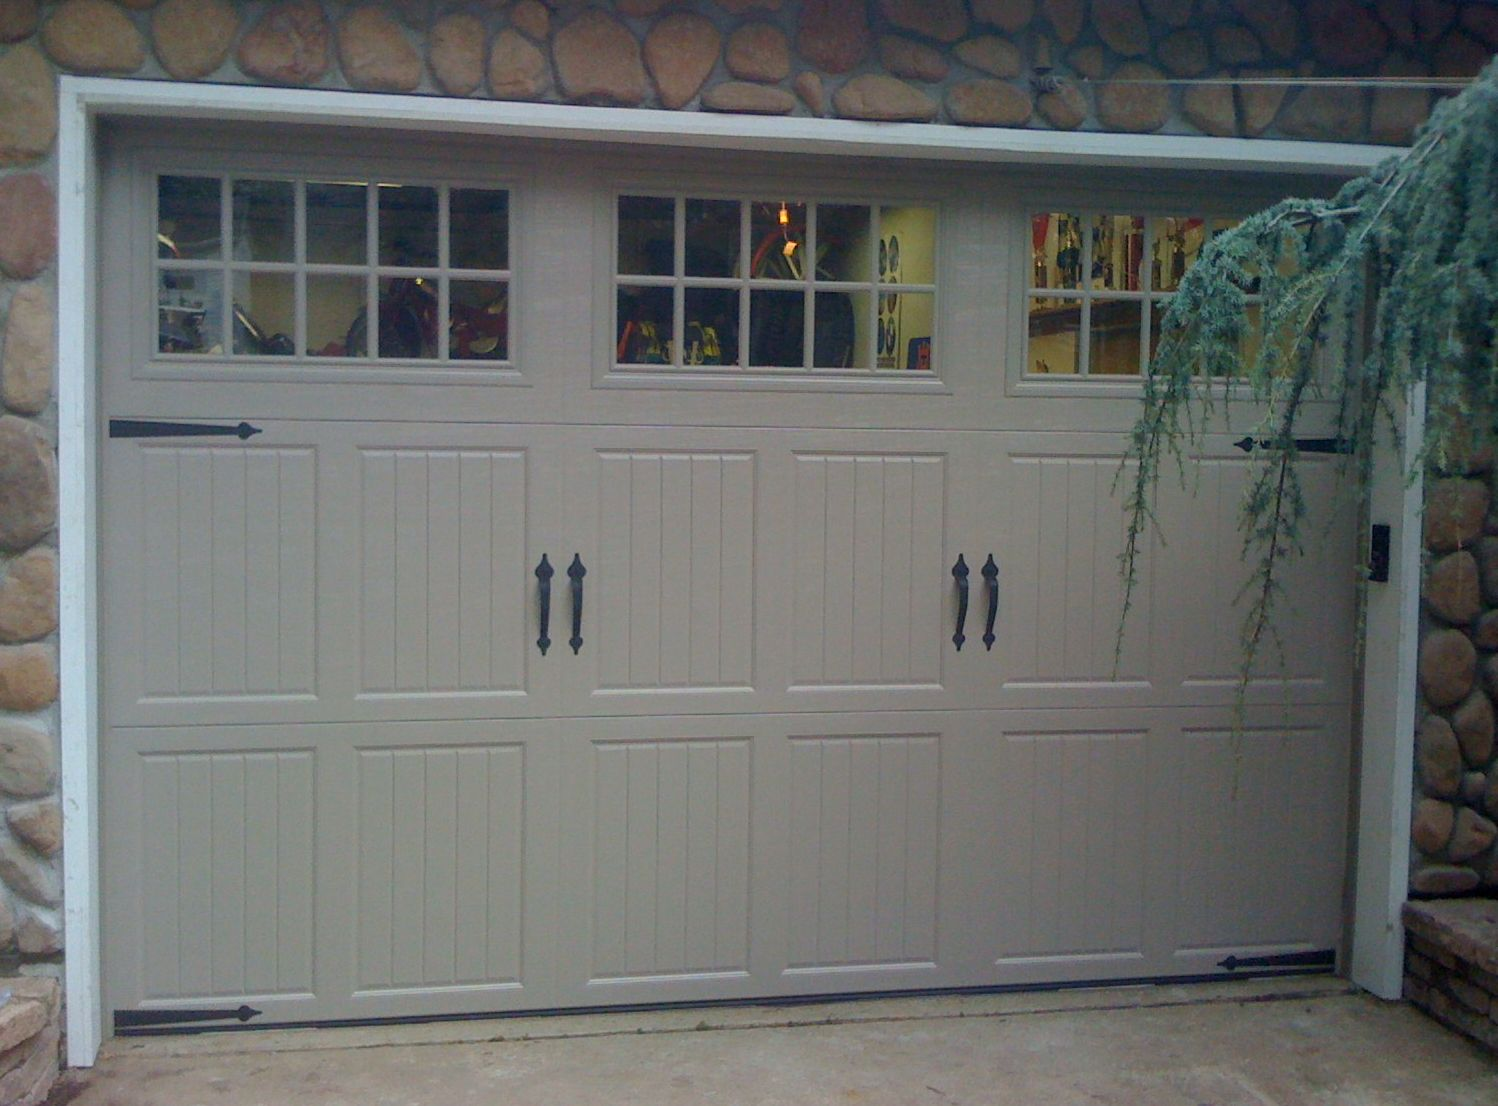 1106 #4E6C7D All American Overhead Garage Doors And Garage Door Openers picture/photo Amarr Garage Doors Phone Number 35991498